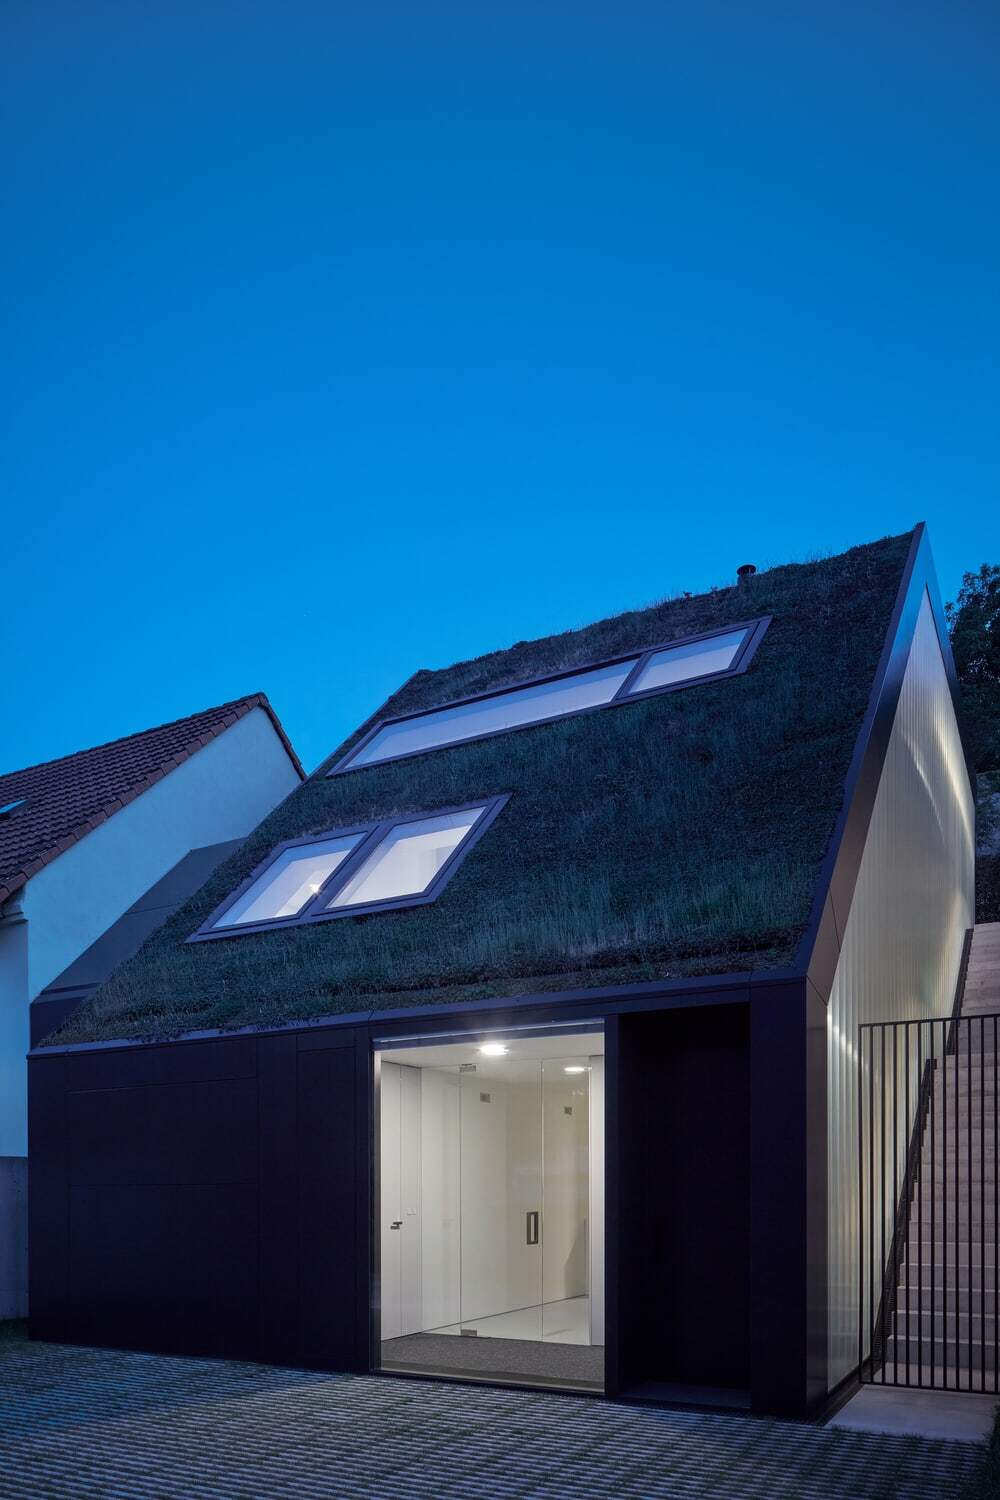 Family House on the Waterfront with a Green Roof / Kuba & Pilař Architekti